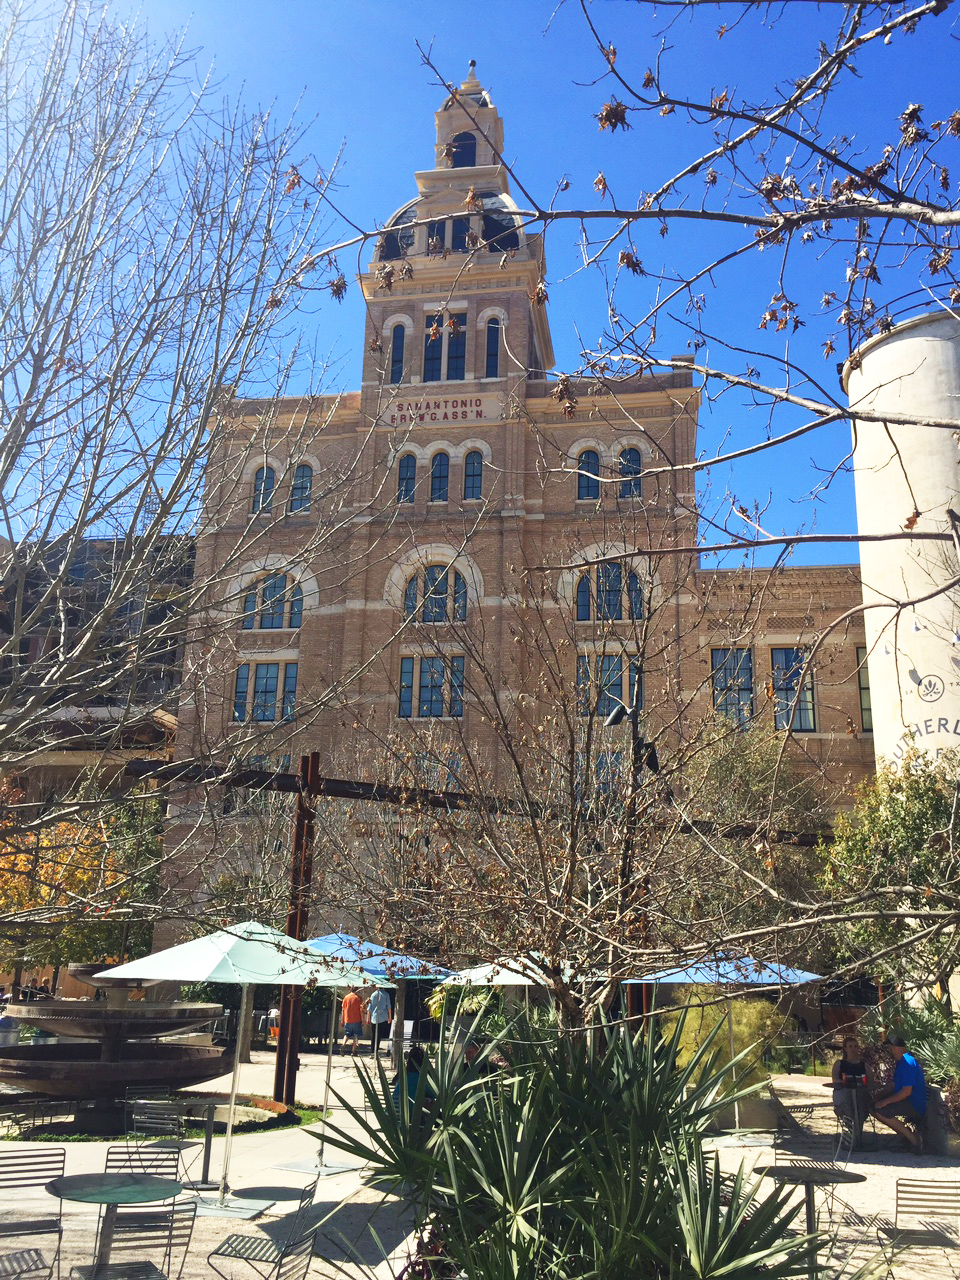 The Pearl Brewery's, Southerleigh and Hotel Emma